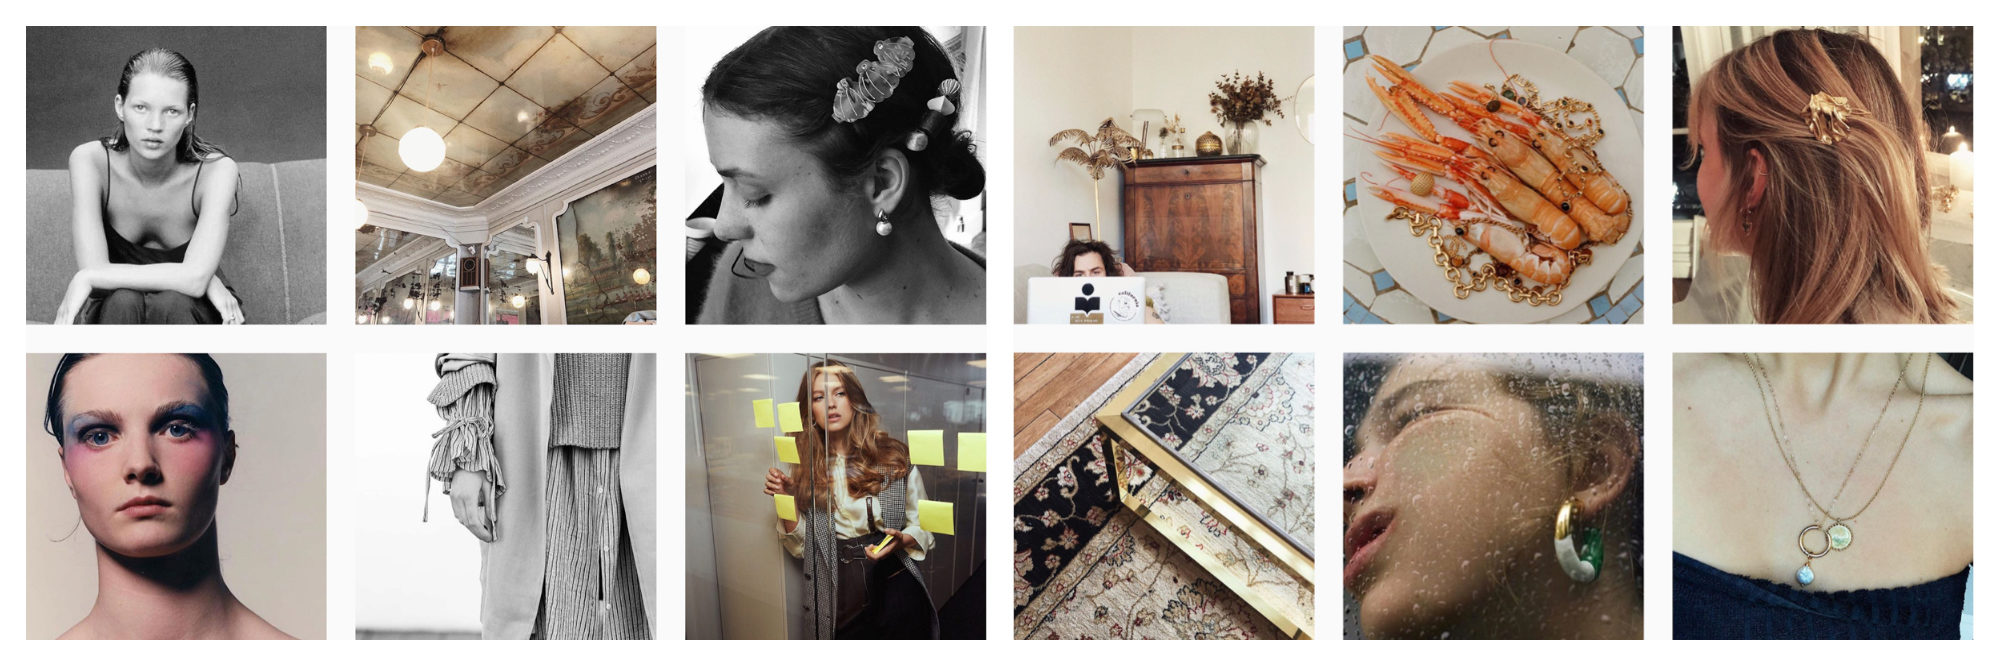 A selection of images of French Instagram fashion influencer Margot Rousseau.